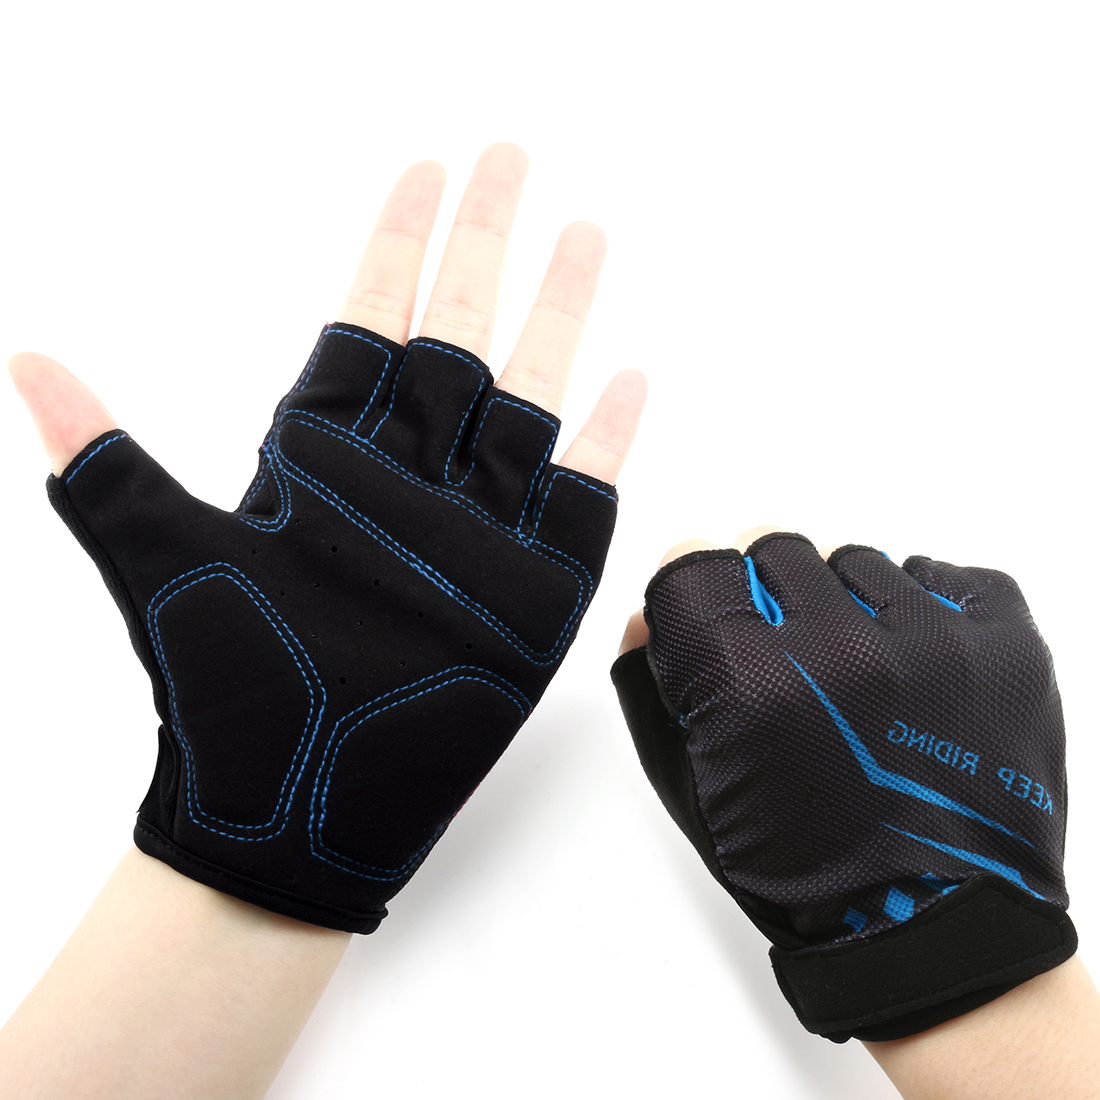 Outdoor Elasticized Fabric Sports Exercise Half Finger Cycling Gloves Palm Support Pair (Blue M)